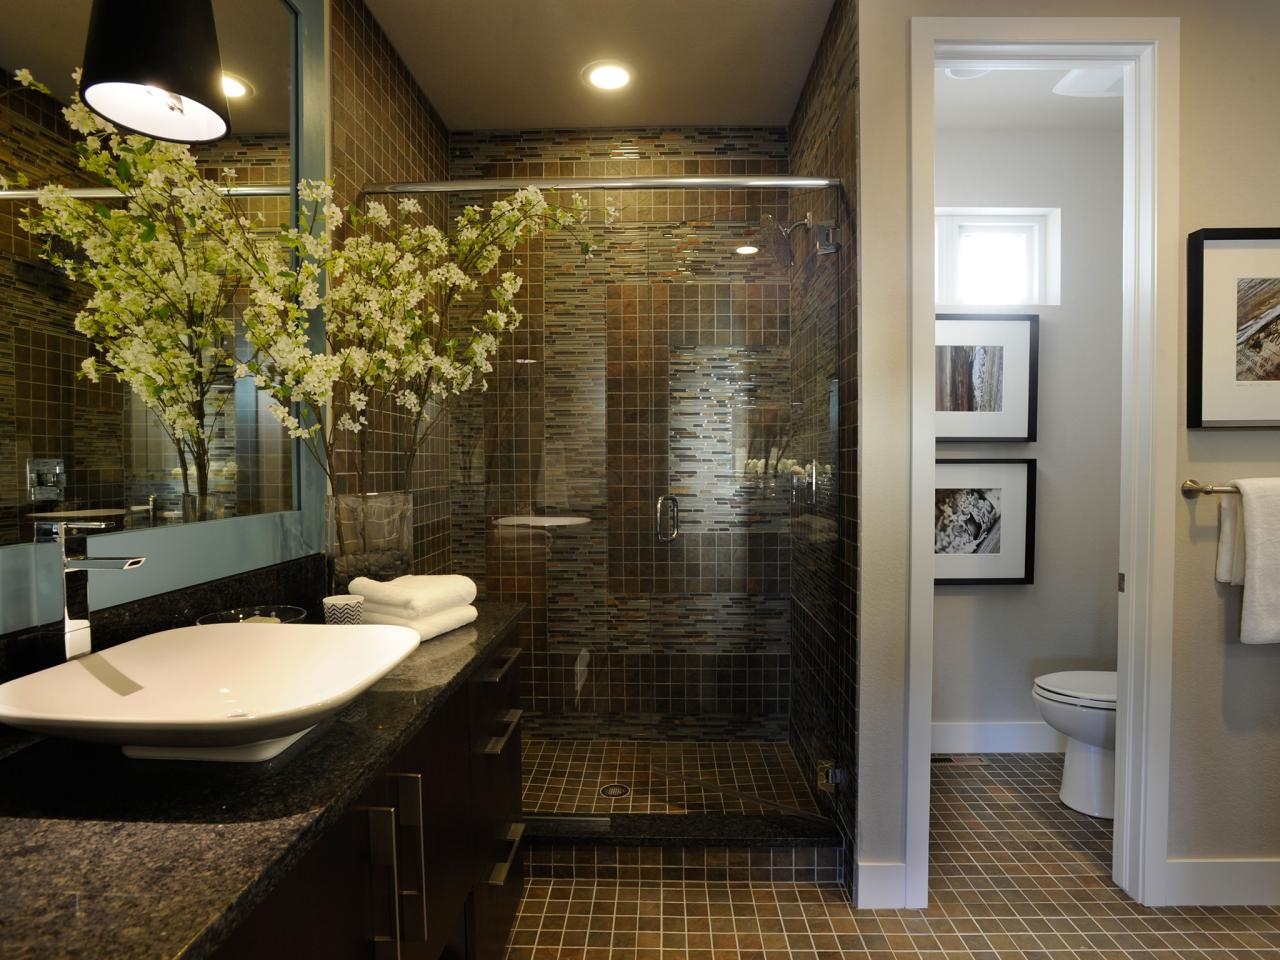 Bathroom space planning hgtv Master bathroom remodel ideas